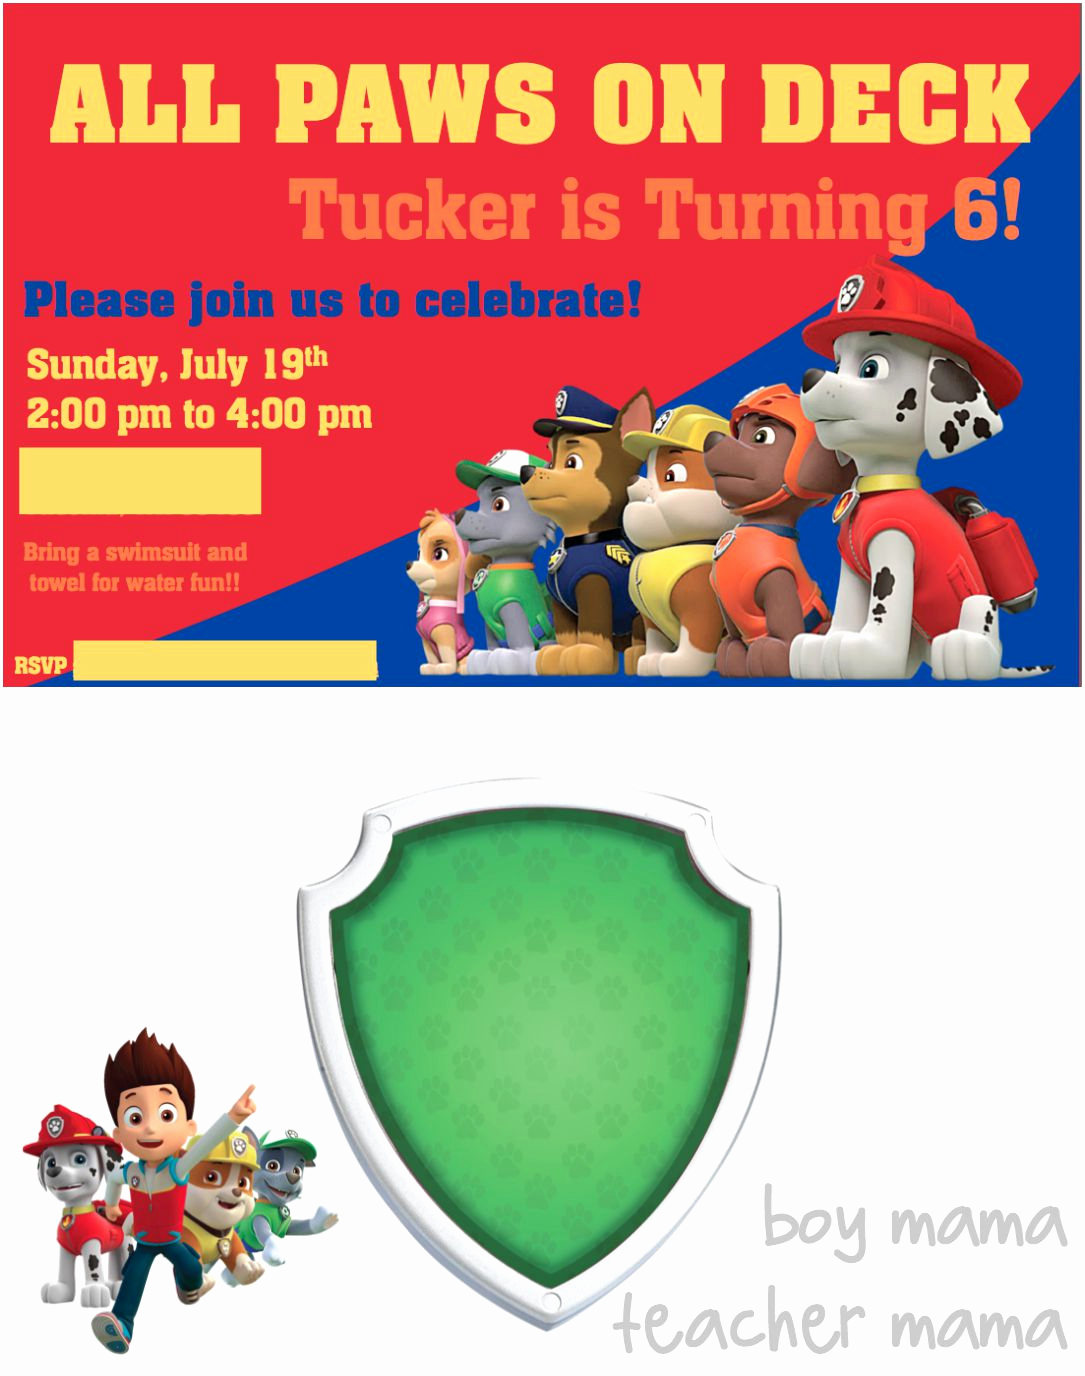 Paw Patrol Invitation Template Blank New Paw Patrol Birthday Party Boy Mama Teacher Mama